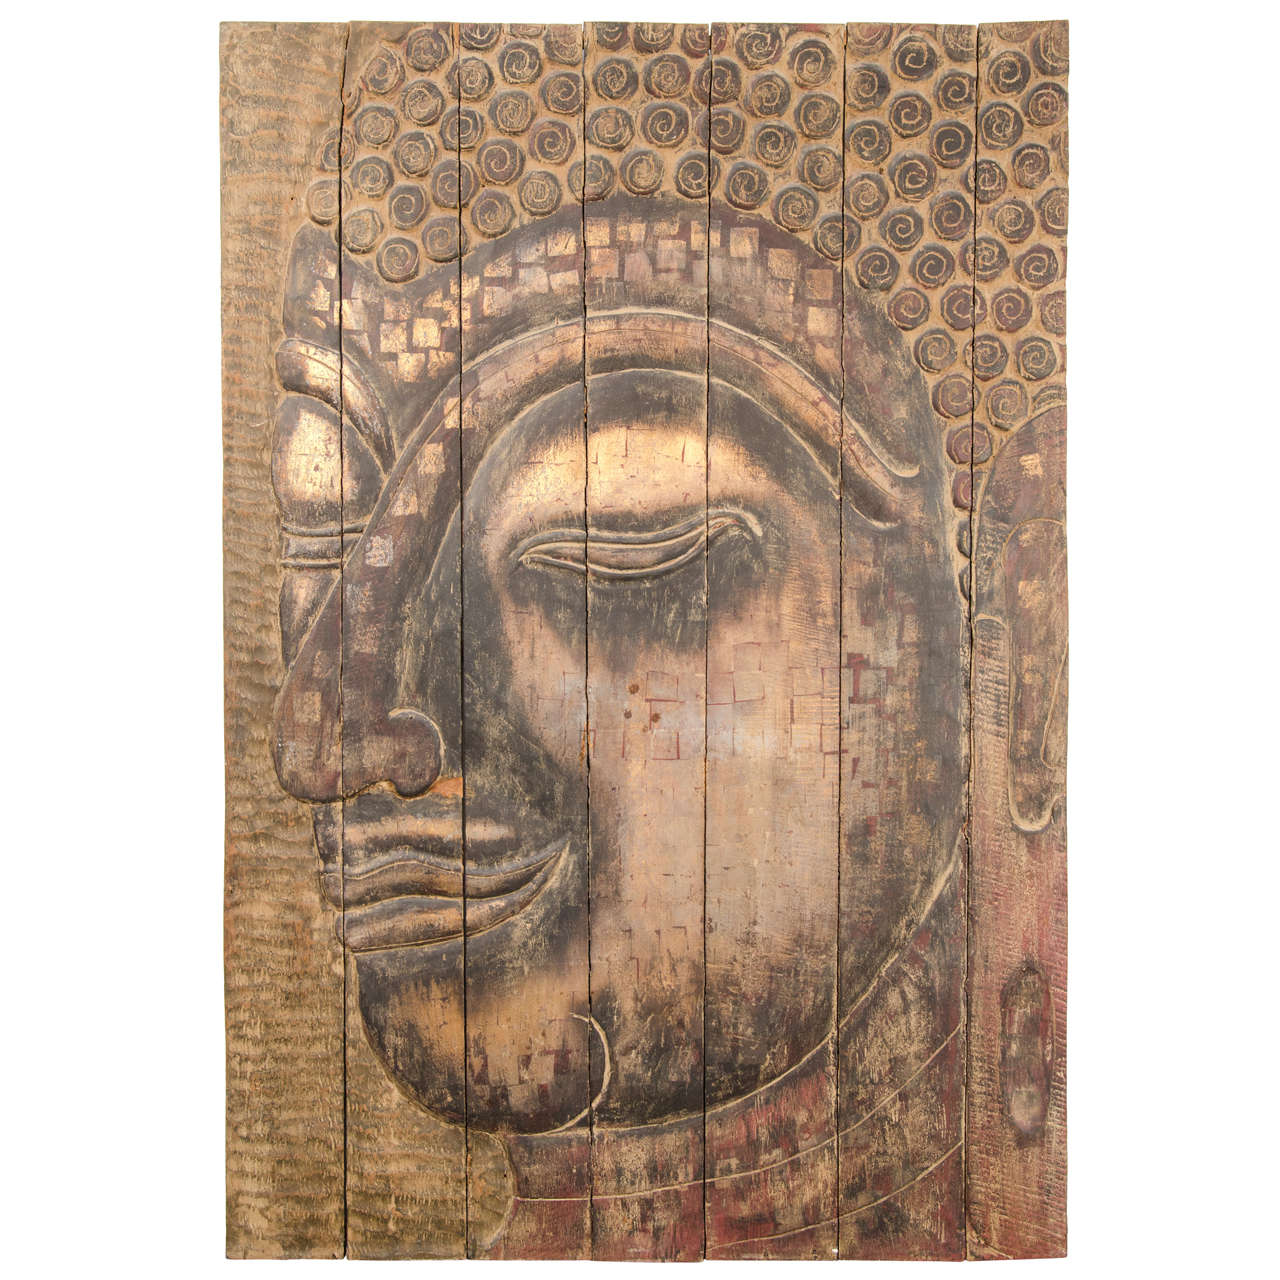 Large scale buddha panel on hand carved reclaimed wood at